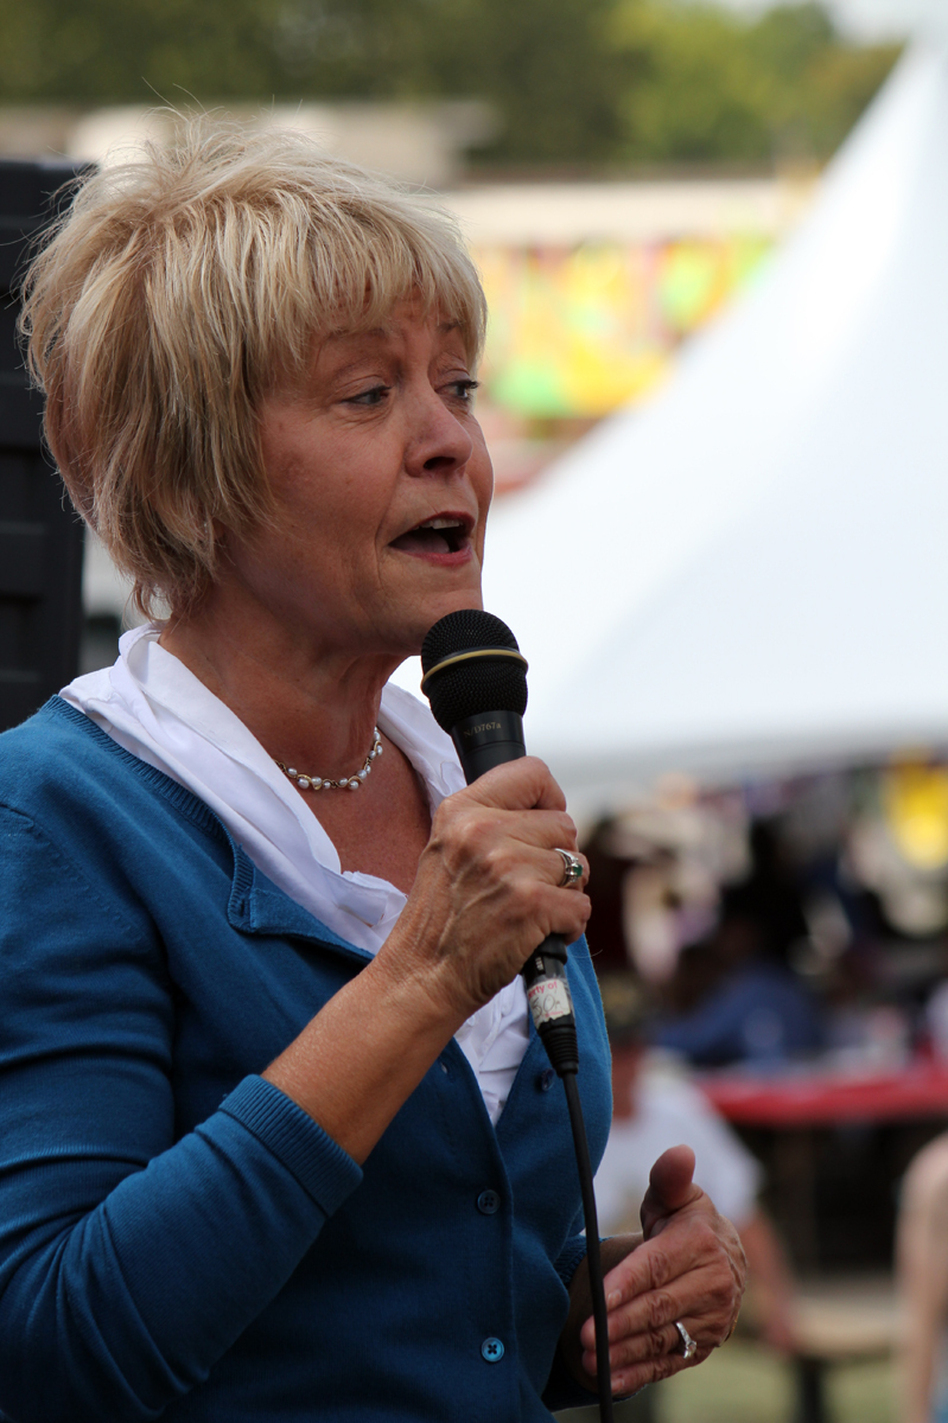 Former Iowa first lady Christie Vilsack speaks at a political soapbox at the Iowa State Fair in Des Moines. (Iowa Public Radio)